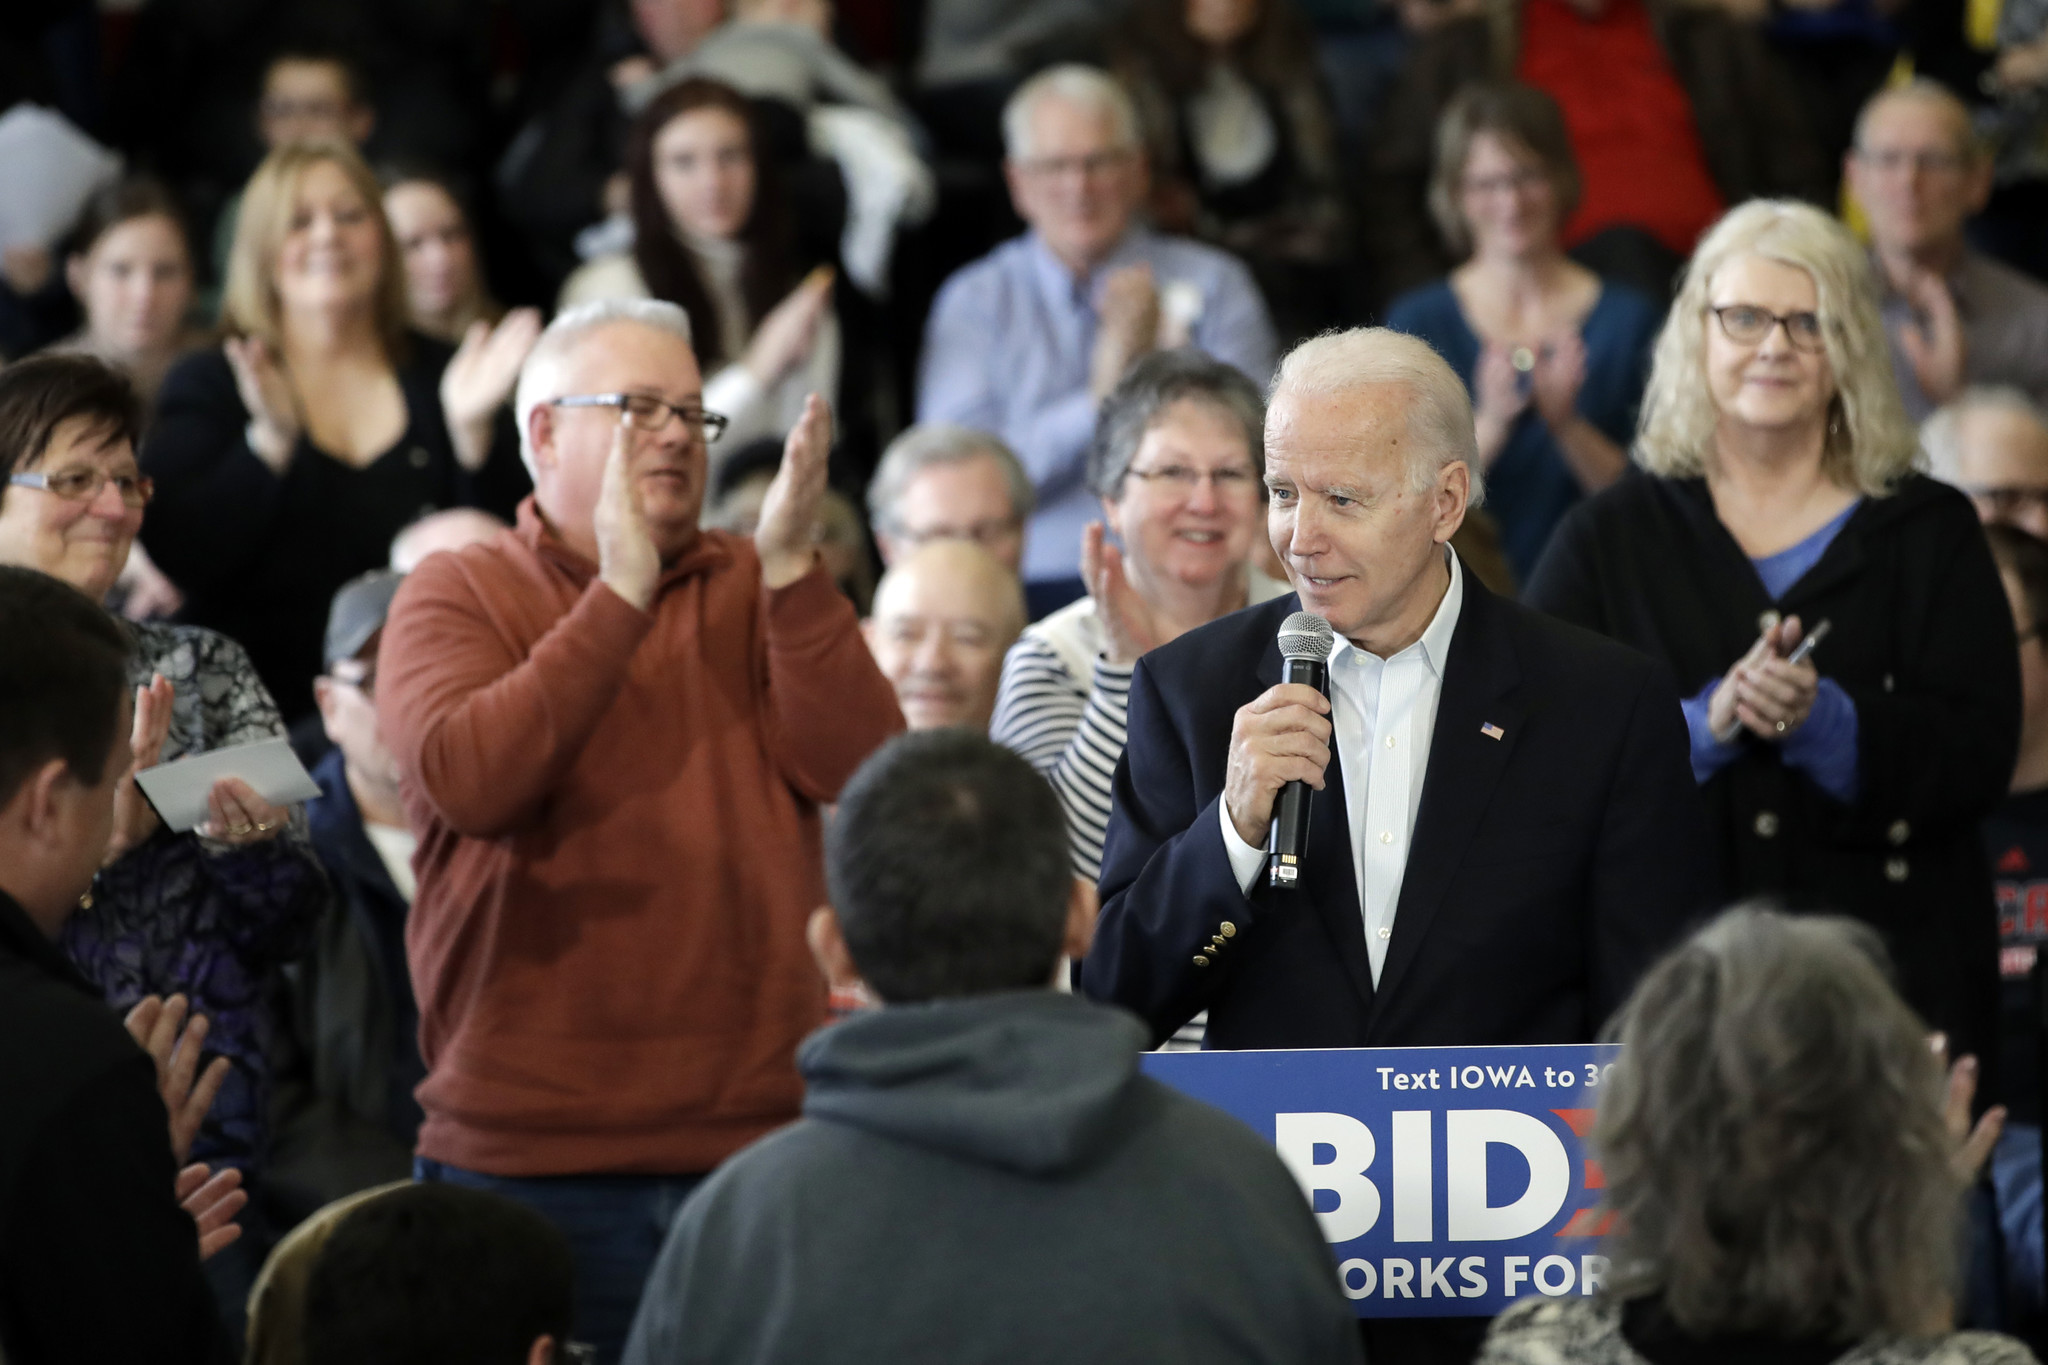 Democratic presidential candidates take Iowa by storm ahead of Monday caucus